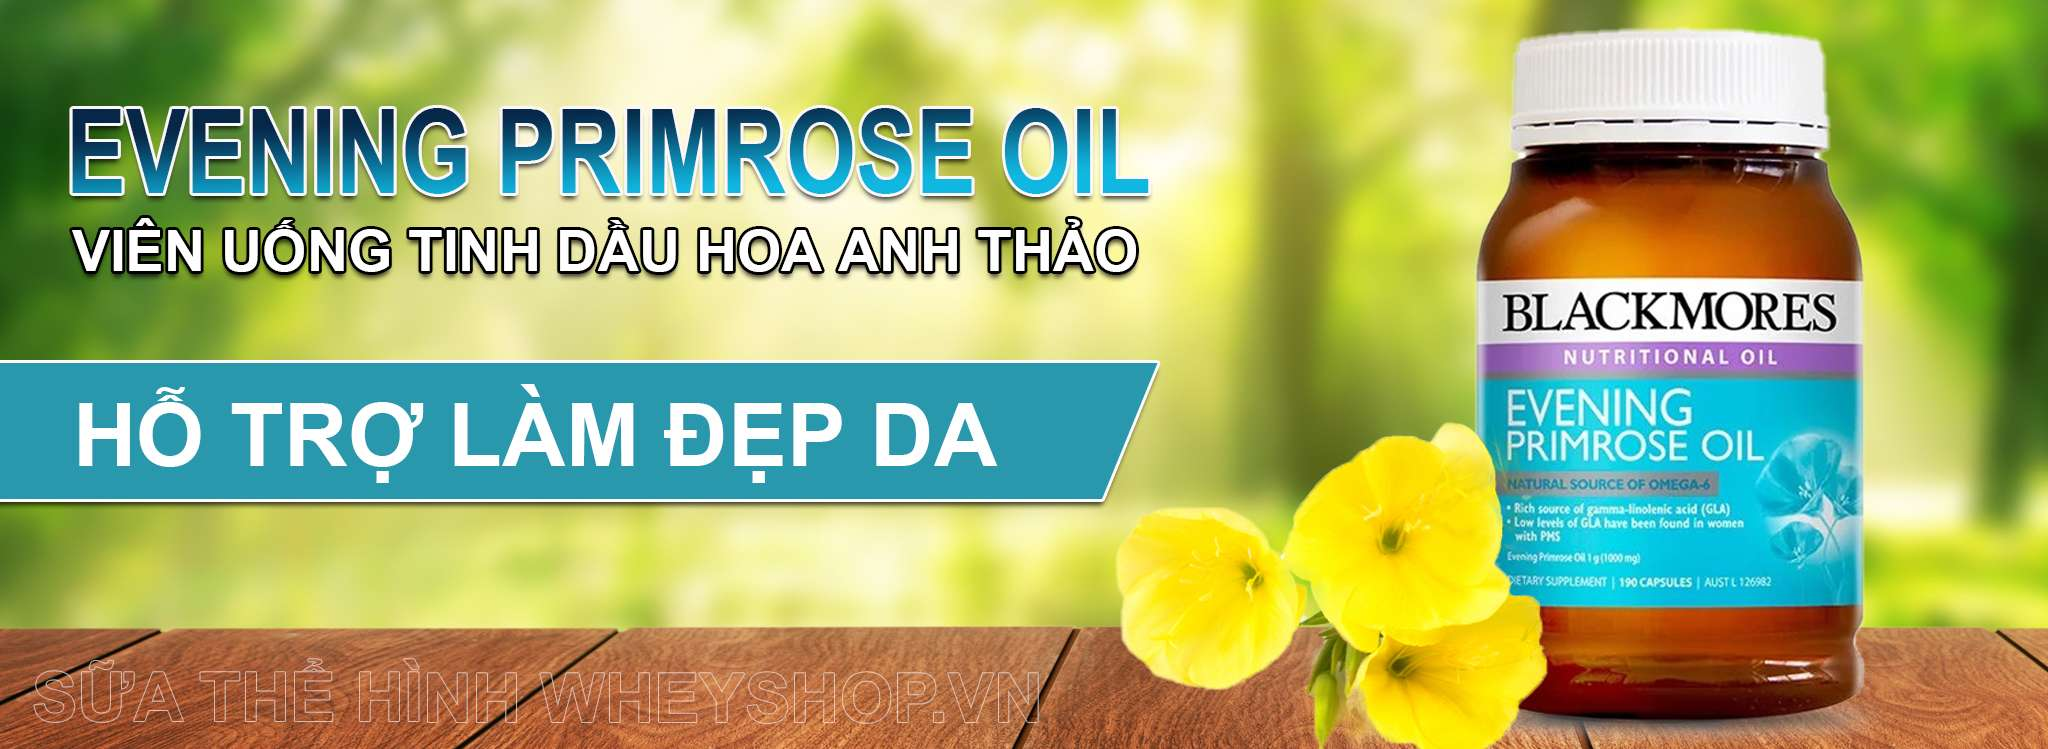 Evening Primrose Oil gia re ha noi tphcm